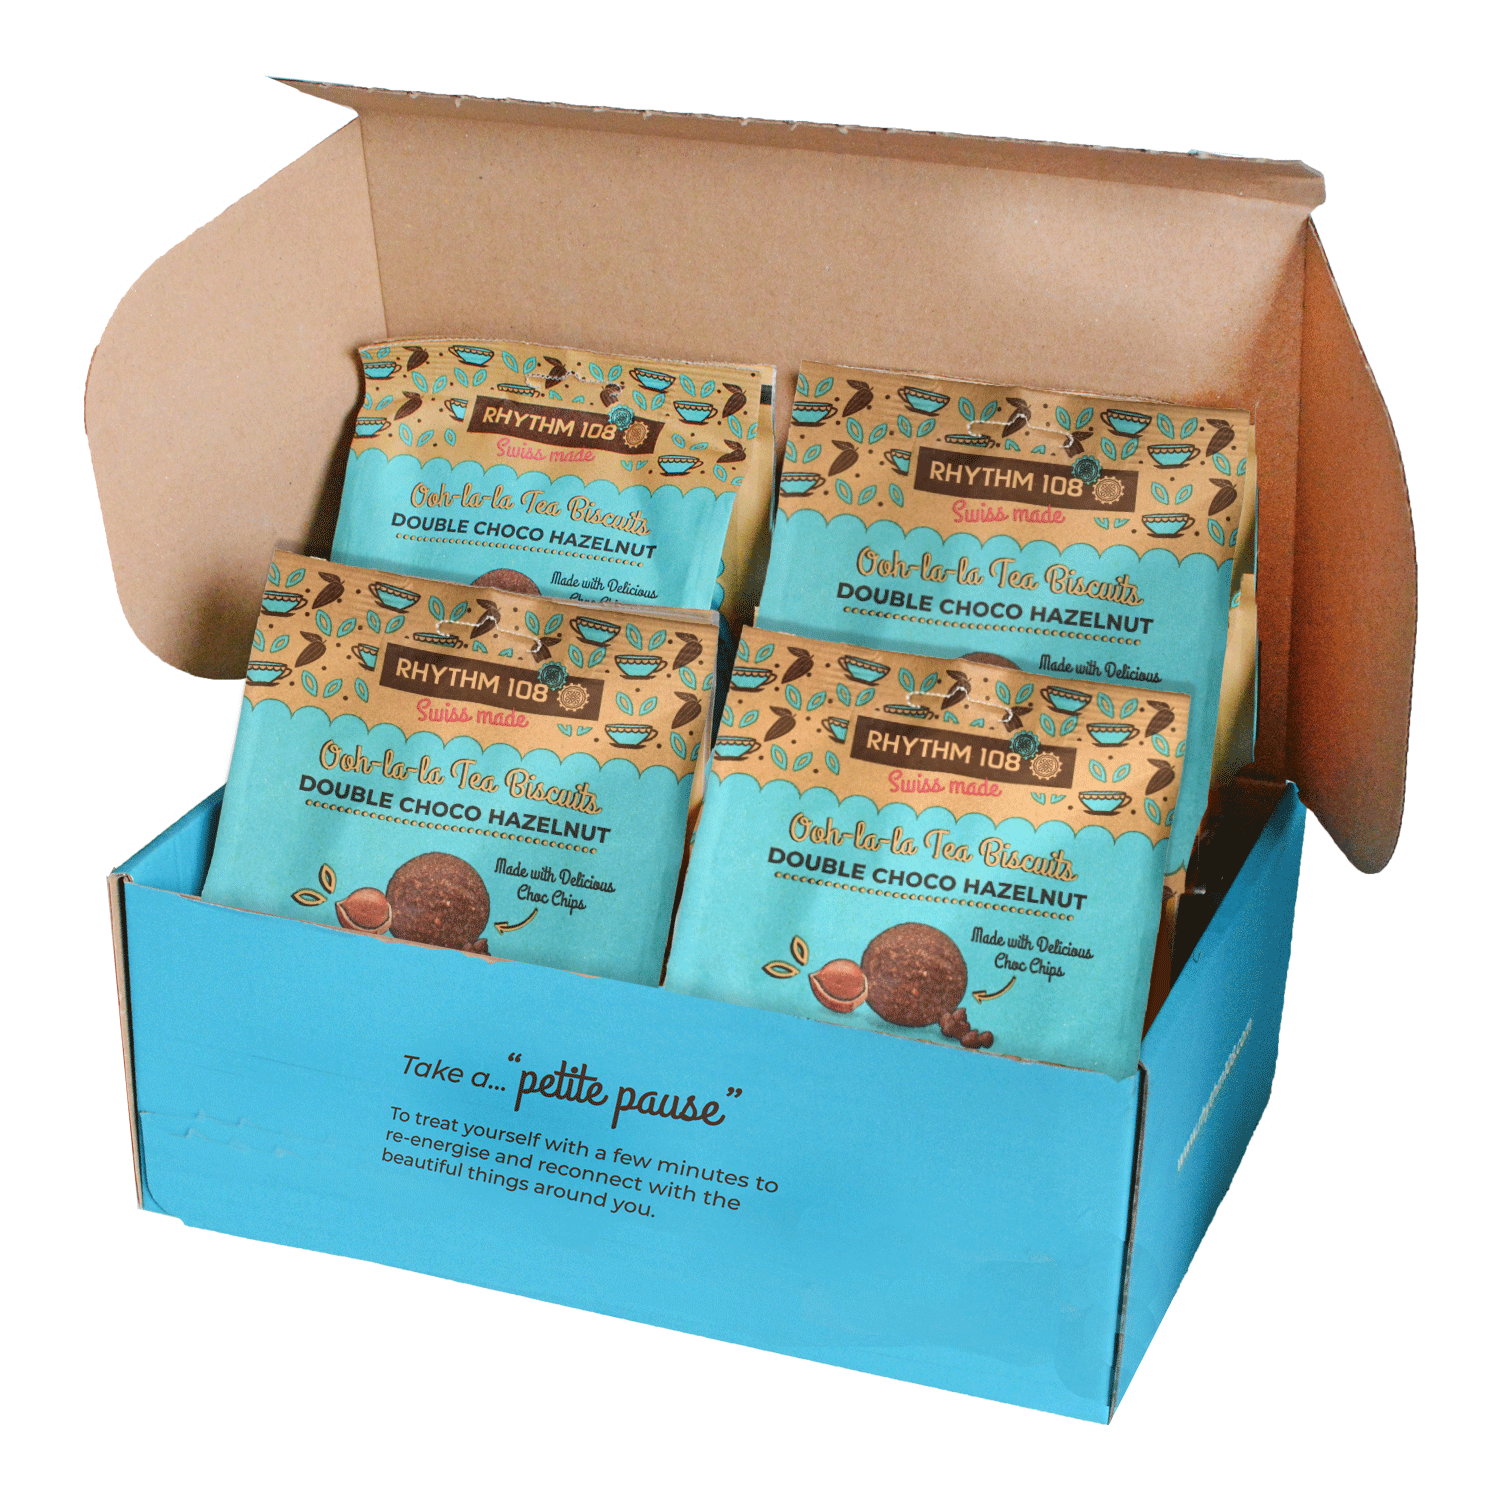 Tea Biscuits Sharebags: DOUBLE CHOCOLATE HAZELNUT SHARE BAG BISCUIT 135g x 4 �C Rhythm 1081500 x 1500 png 760kB